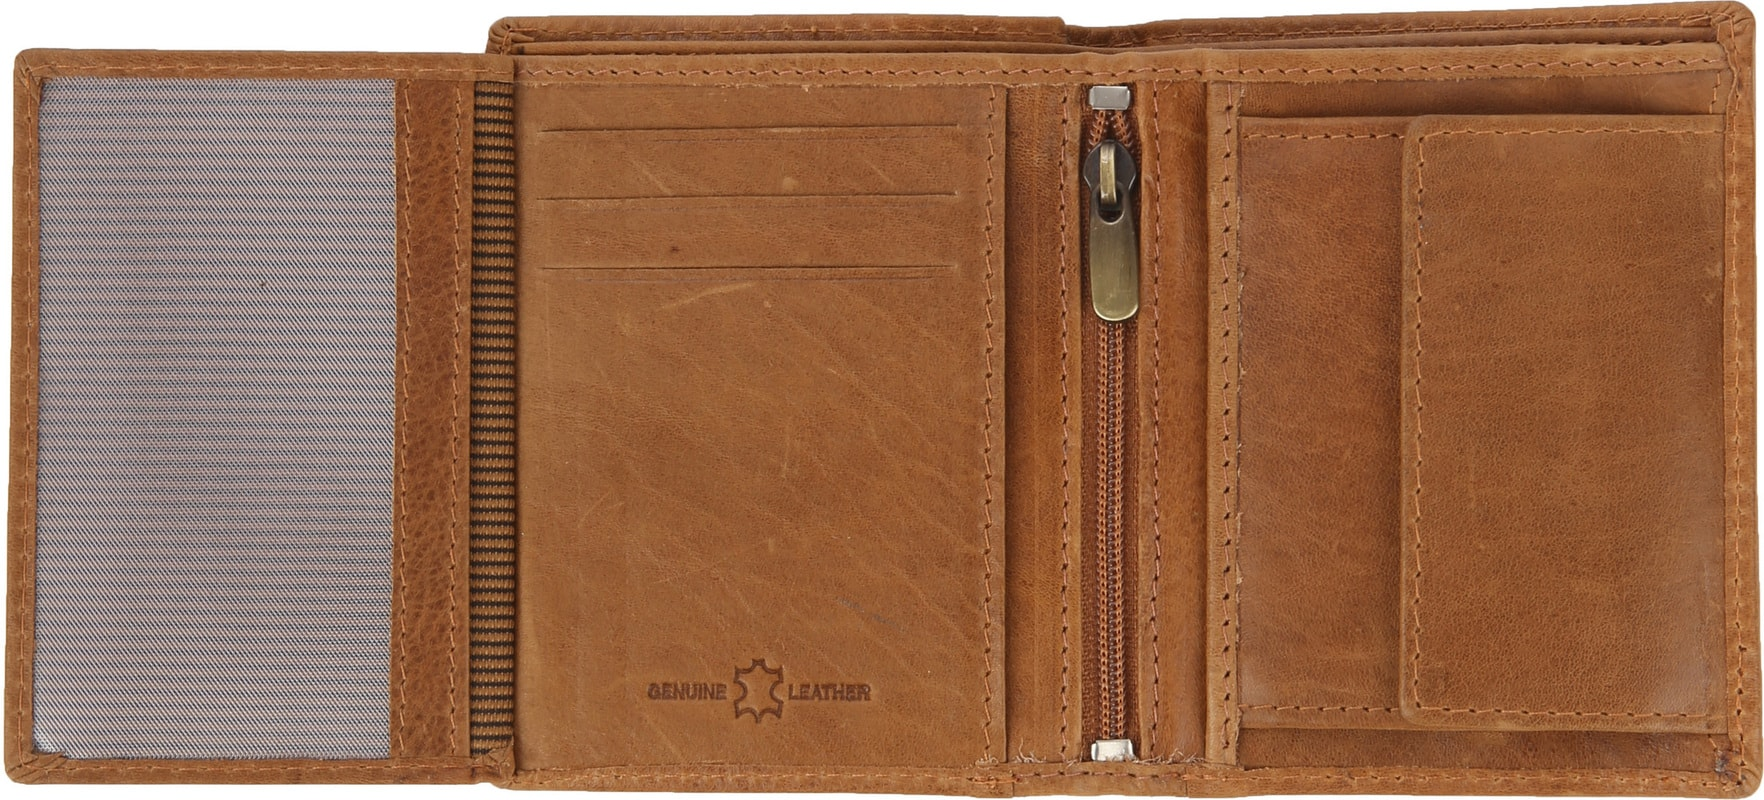 Suitable Wallet Nikkei Light Brown Leather - Skim Proof photo 2